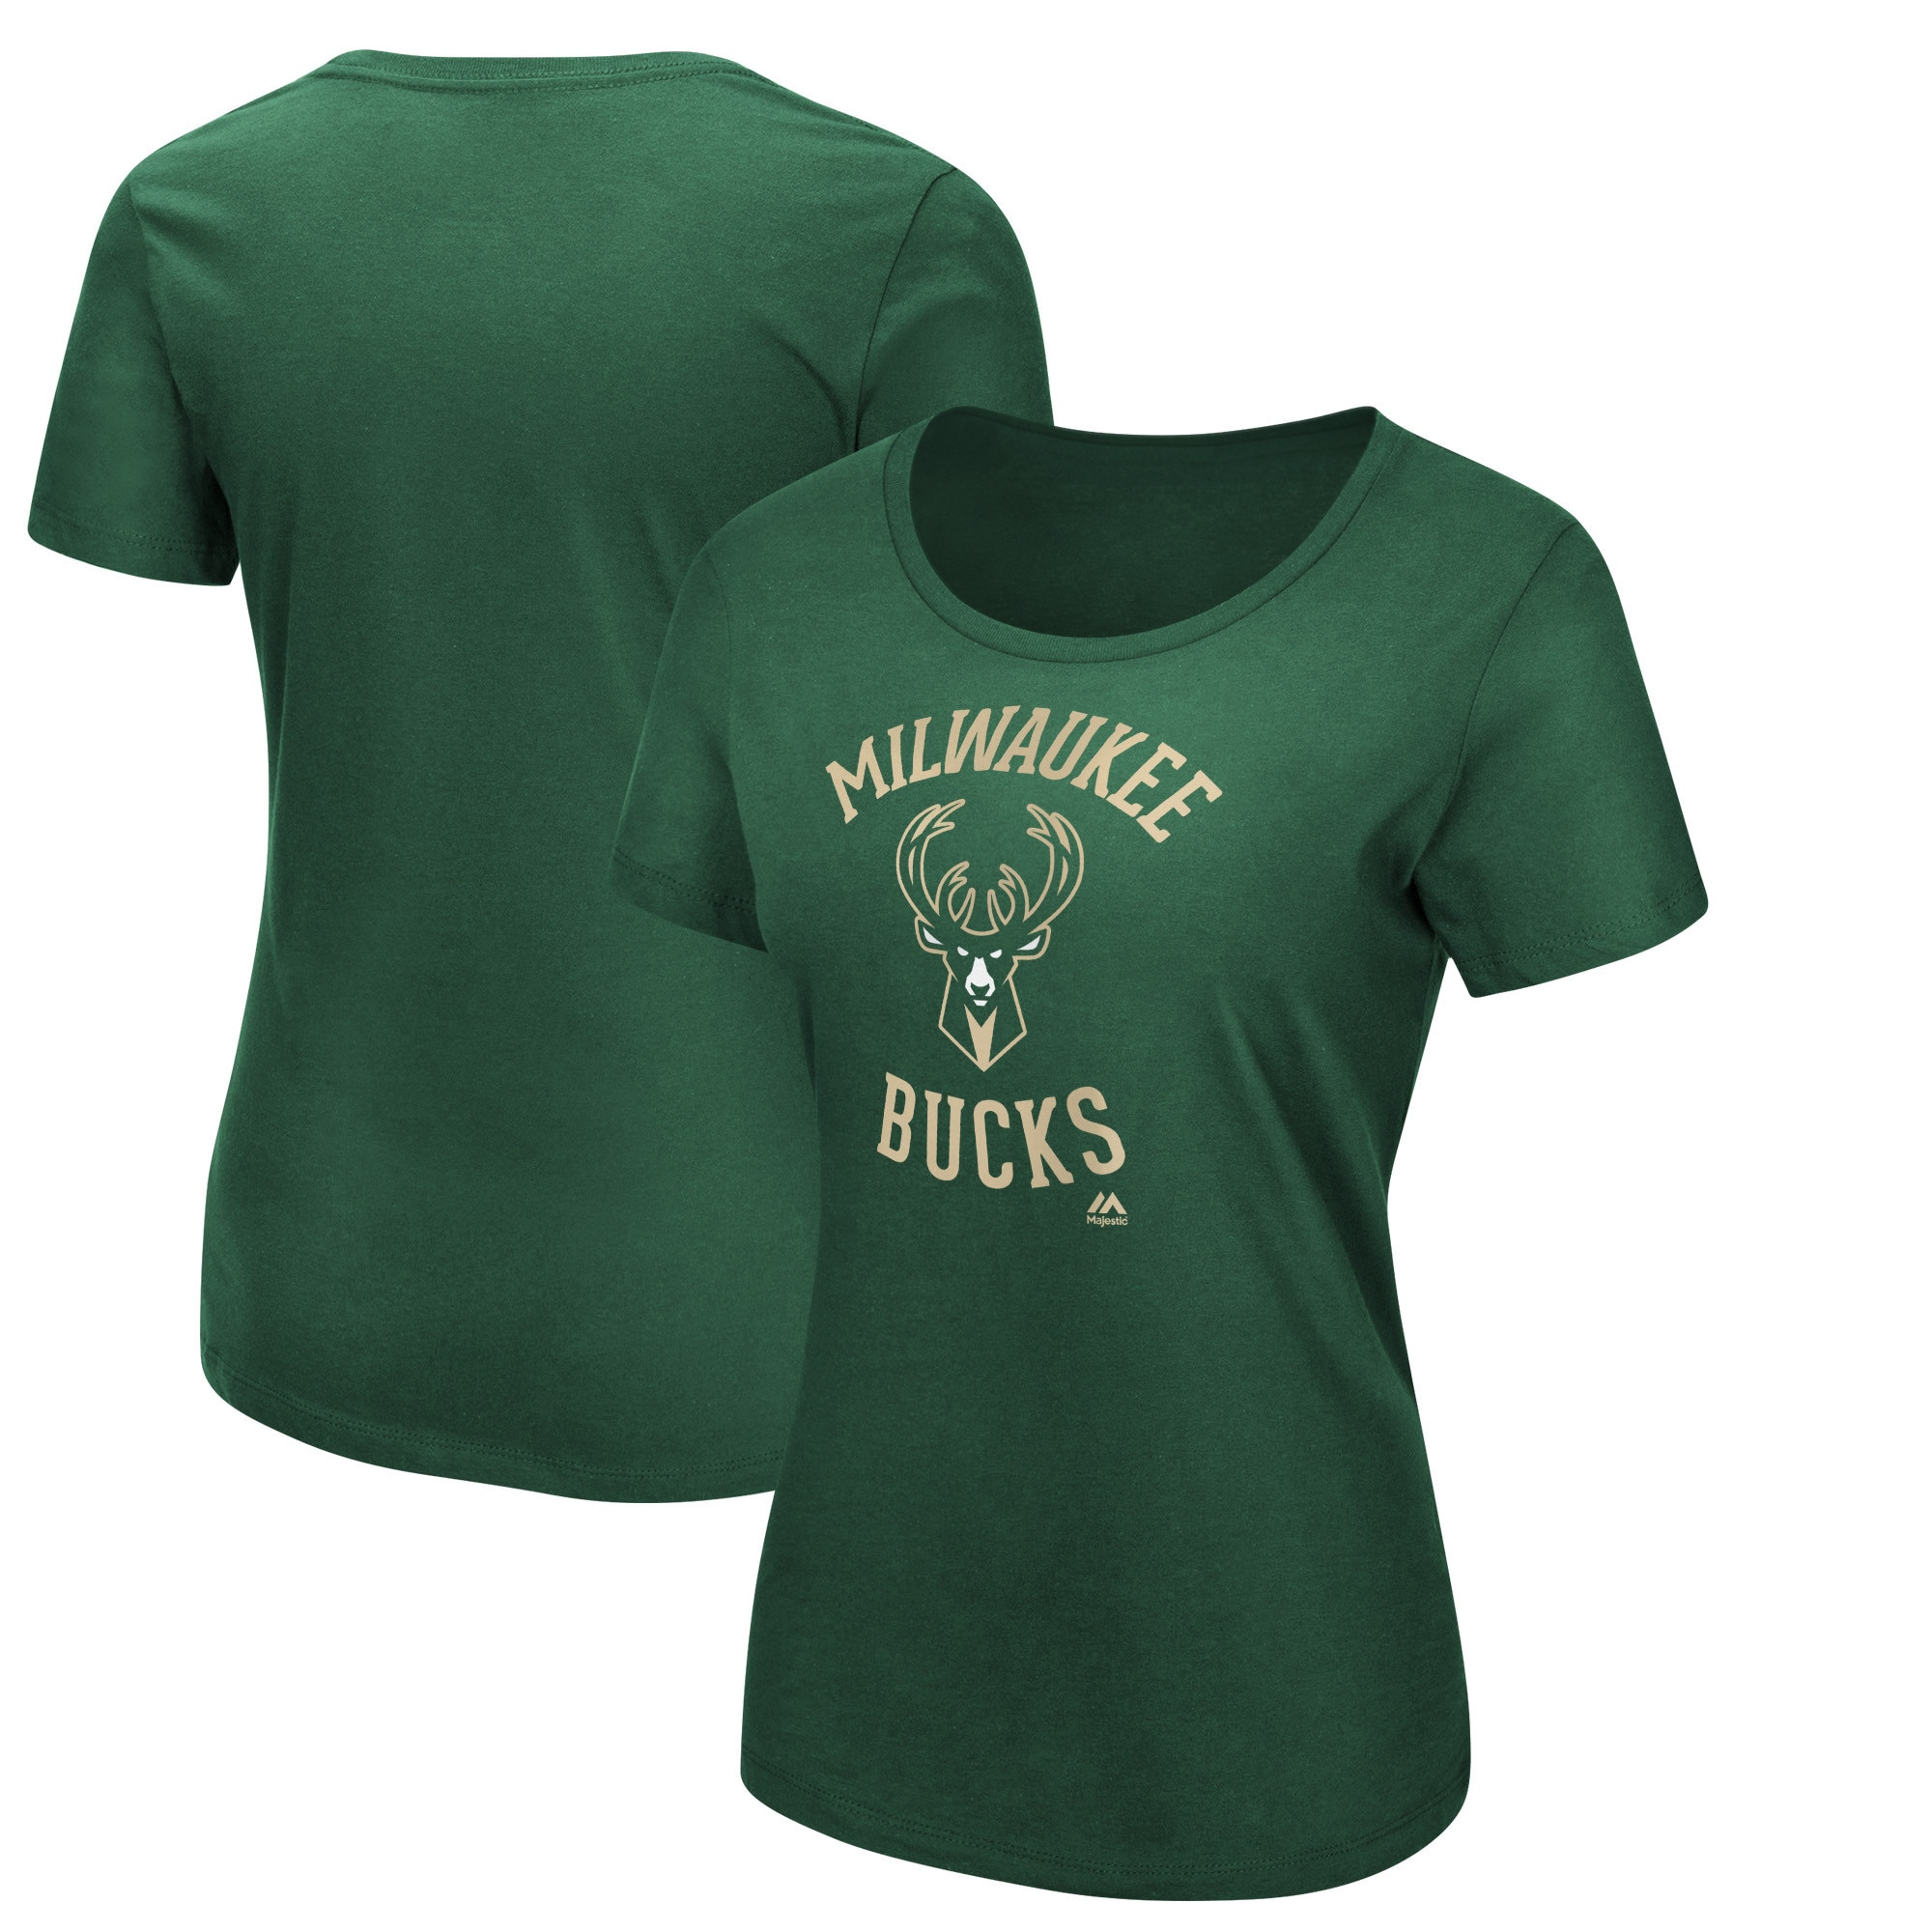 Milwaukee Bucks Majestic Women's The Main Thing T-Shirt - Hunter Green